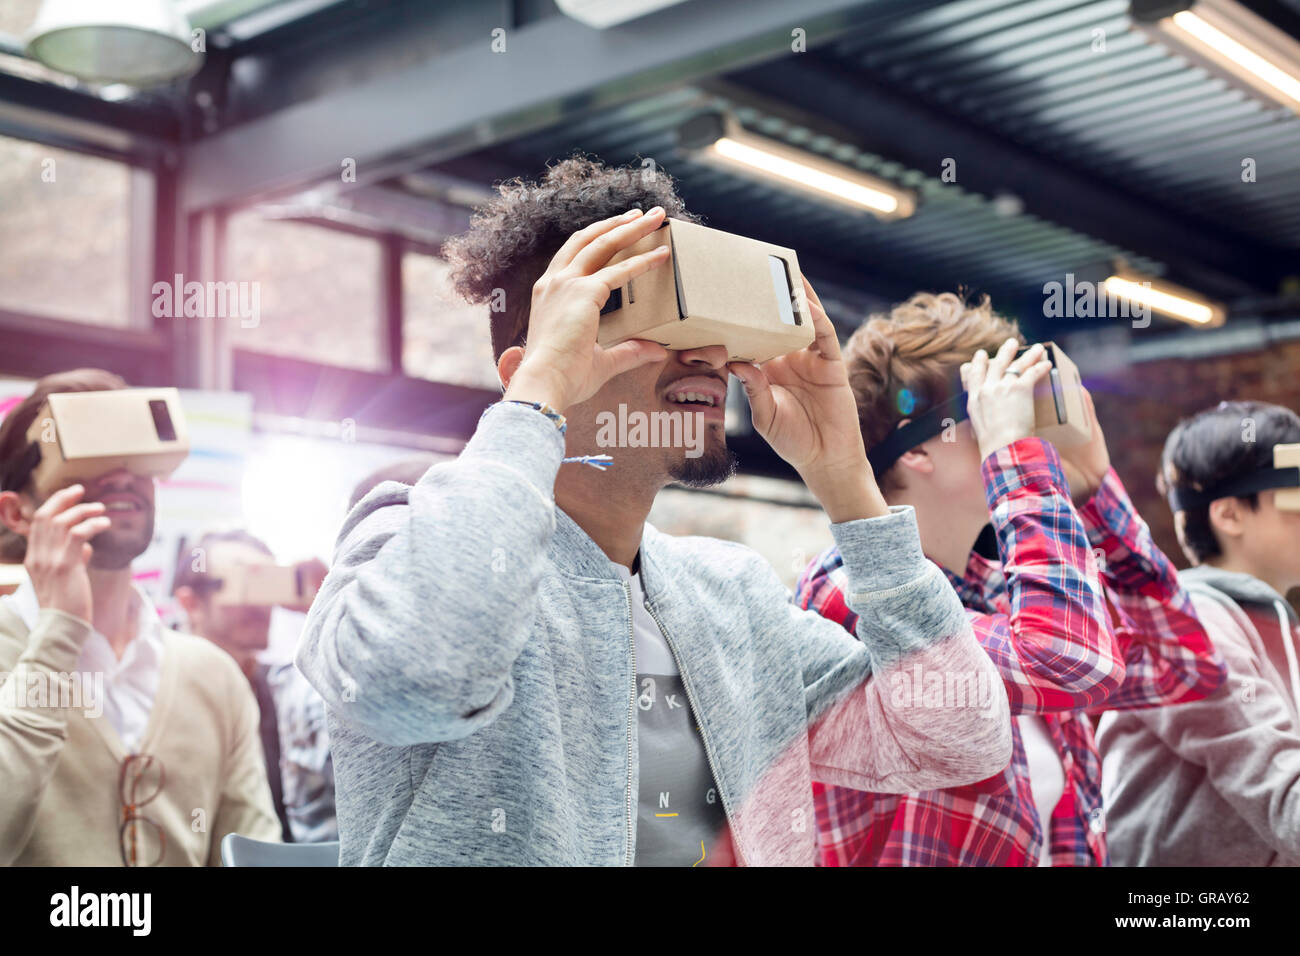 Audience trying virtual reality simulator glasses at technology conference - Stock Image